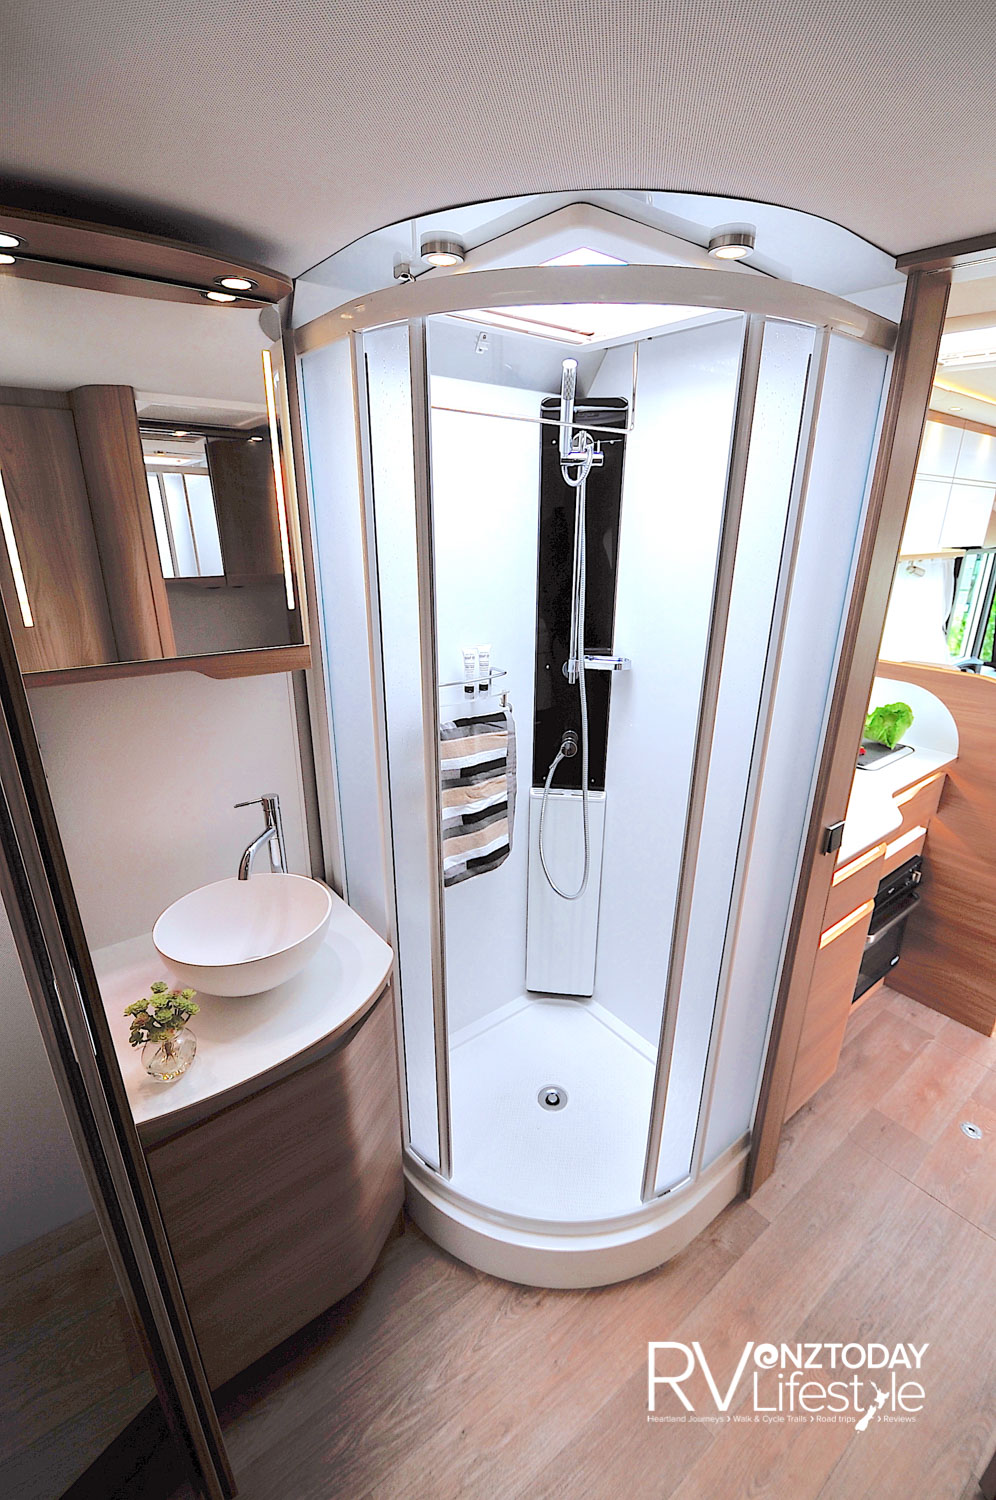 Full shower on the passenger side of the vehicle, en-suite toilet on the opposite side, walk through to the bedroom. Privacy doors to kitchen and bedroom zones